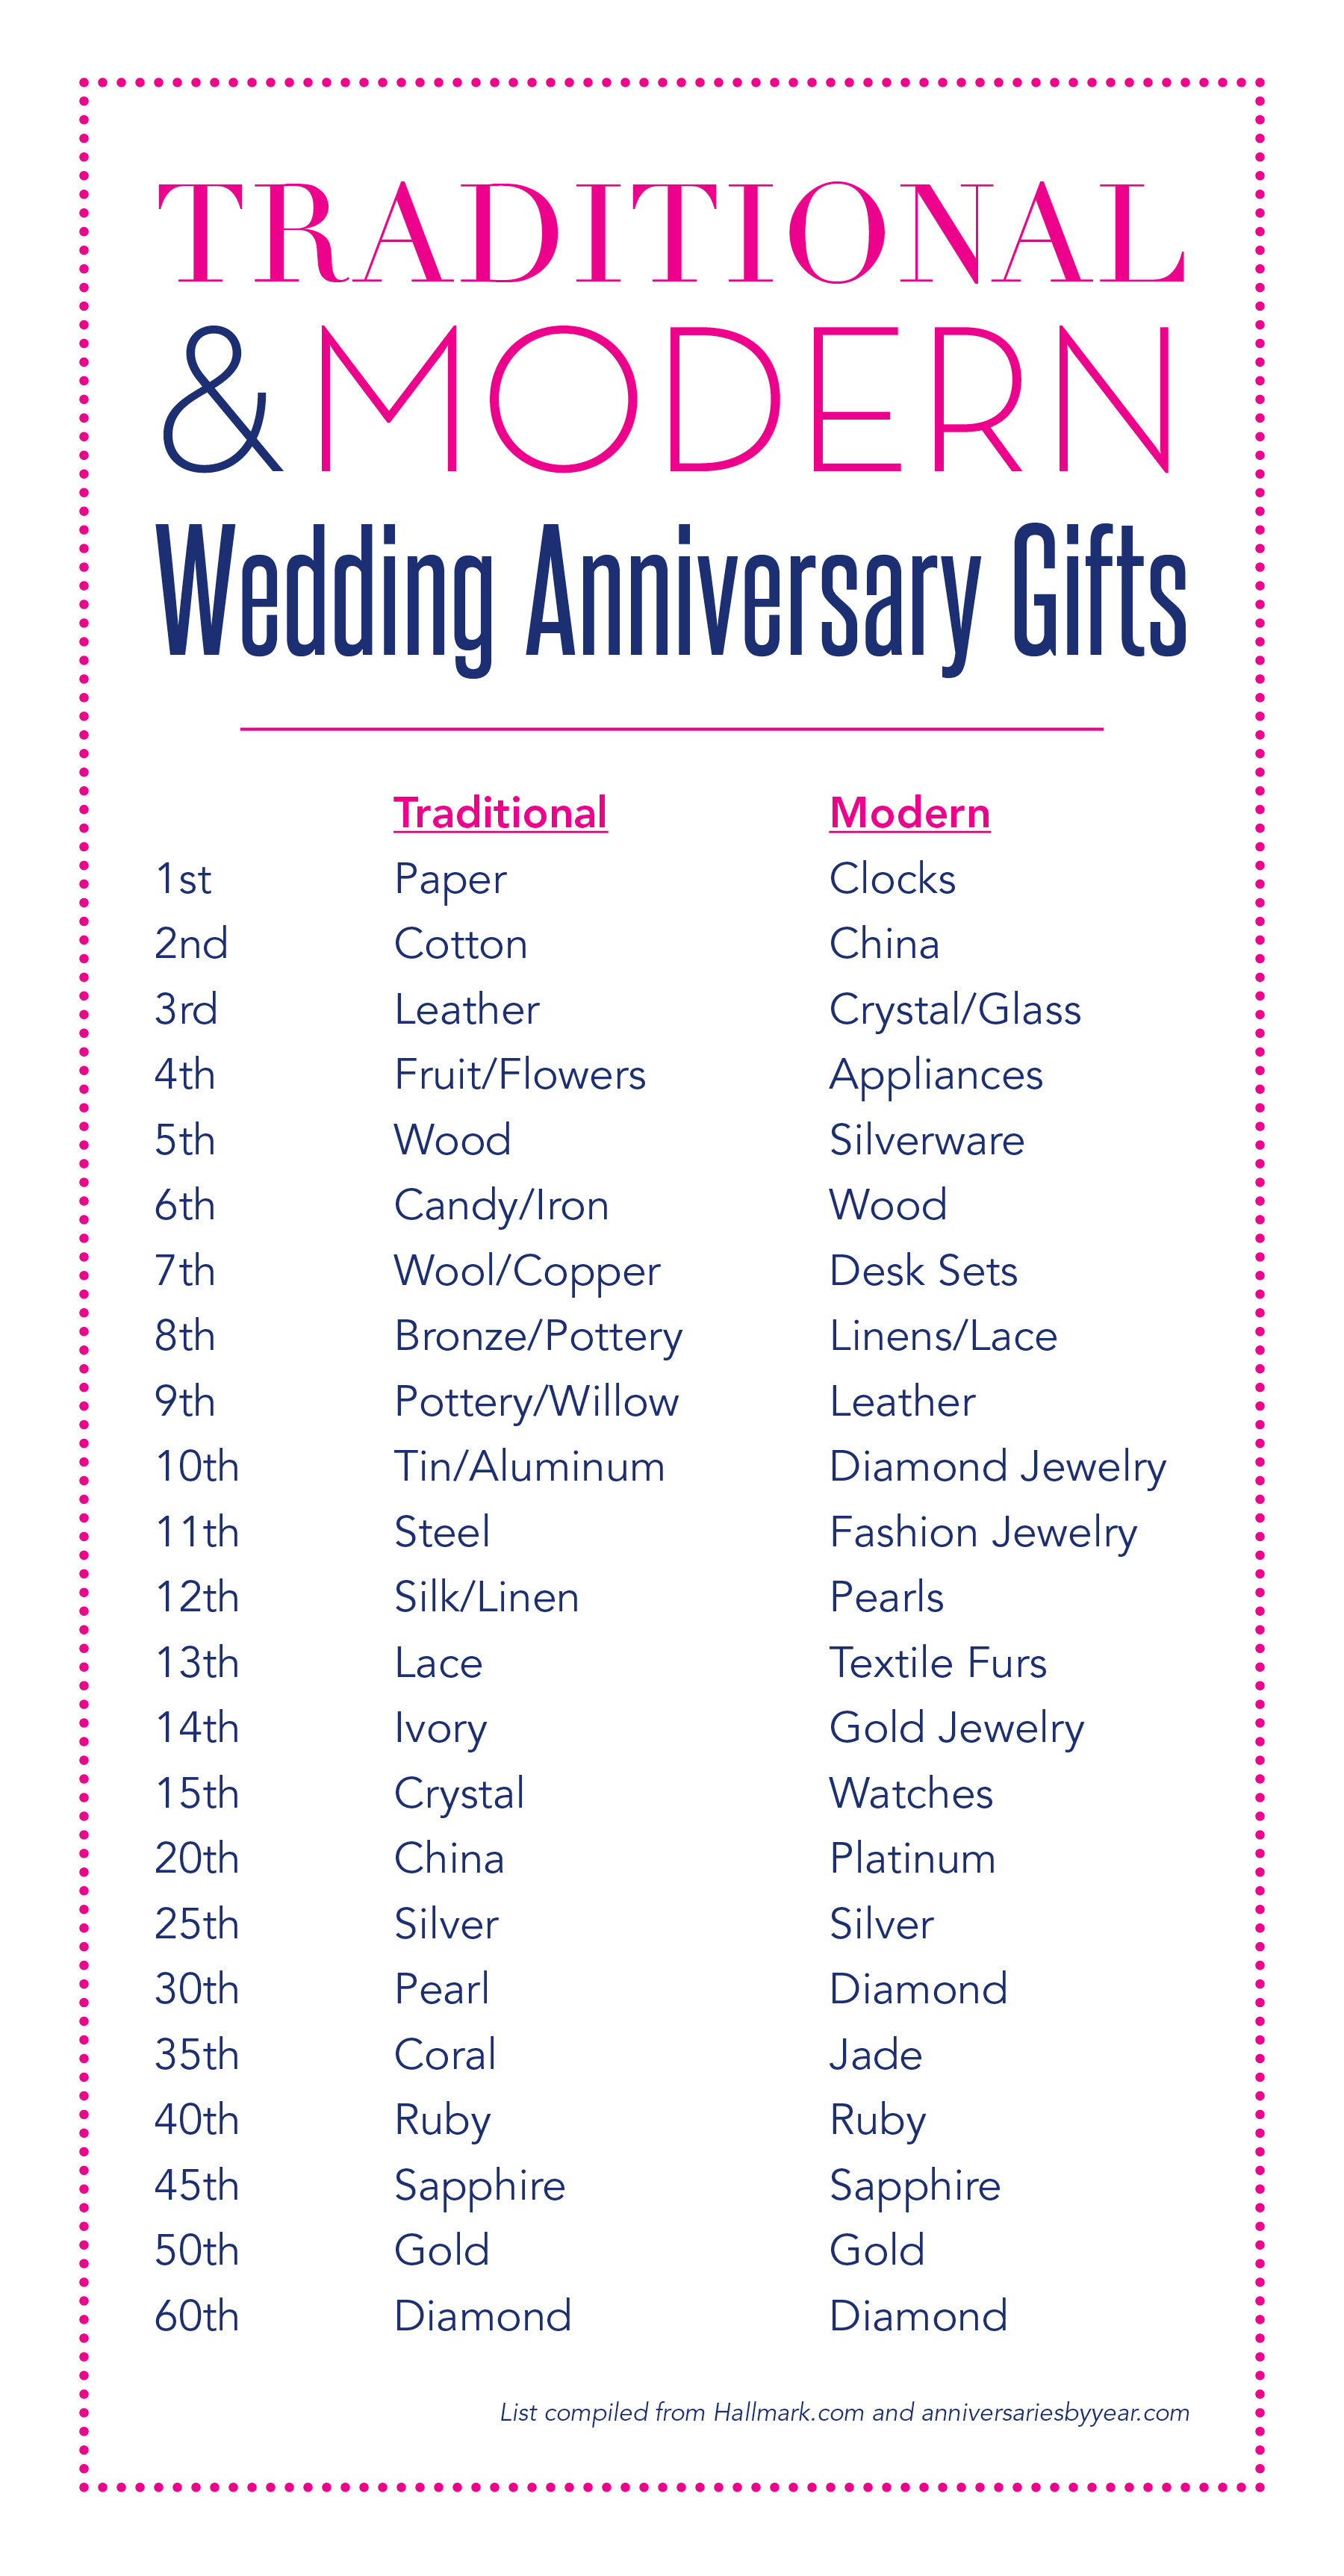 List Wedding Gifts Per Year : wedding anniversary gifts (traditional & modern)